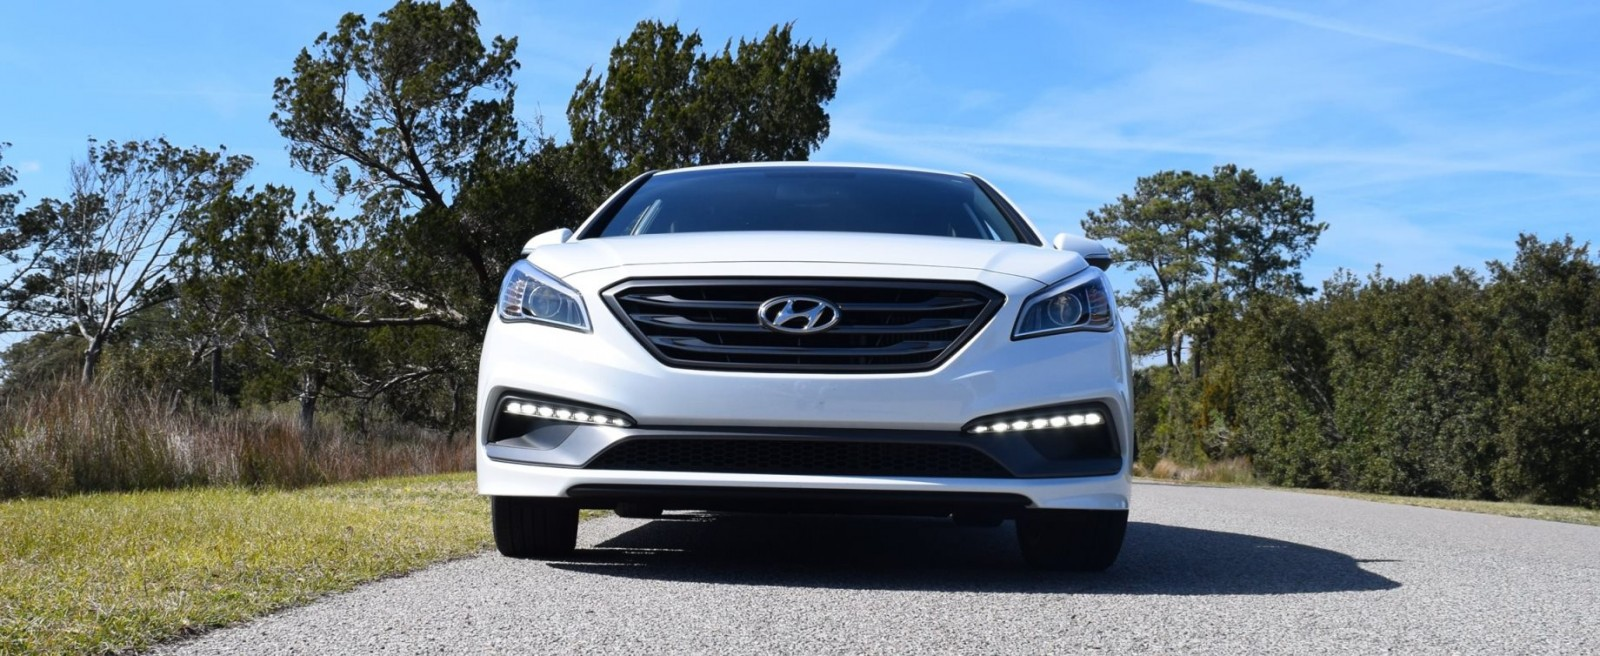 2016 hyundai sonata sport 2 0t quartz white 29. Black Bedroom Furniture Sets. Home Design Ideas